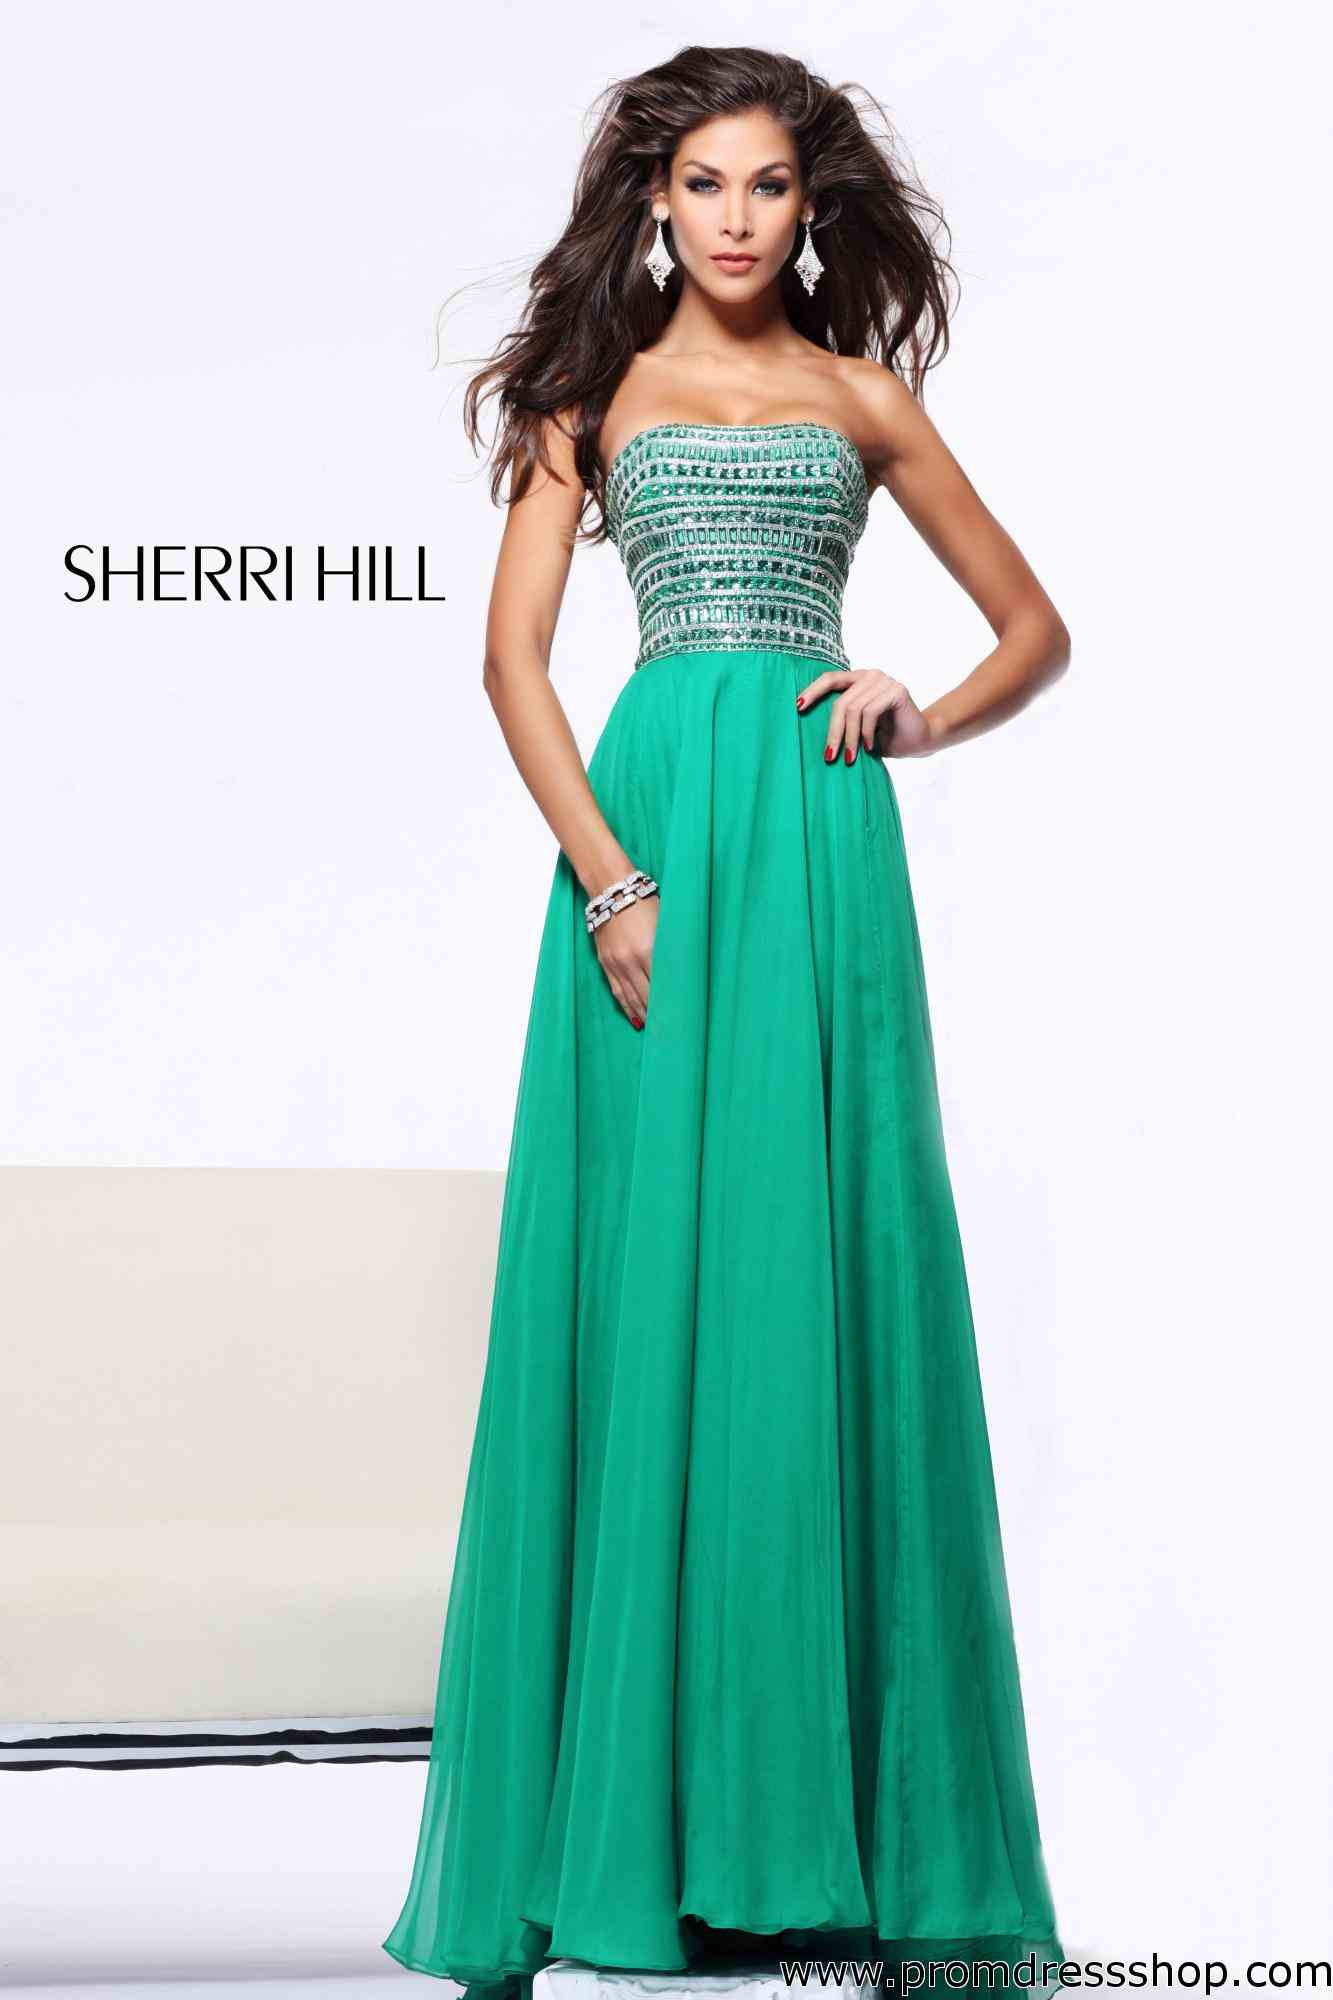 Emerald green strapless prom dress - Prom dress style